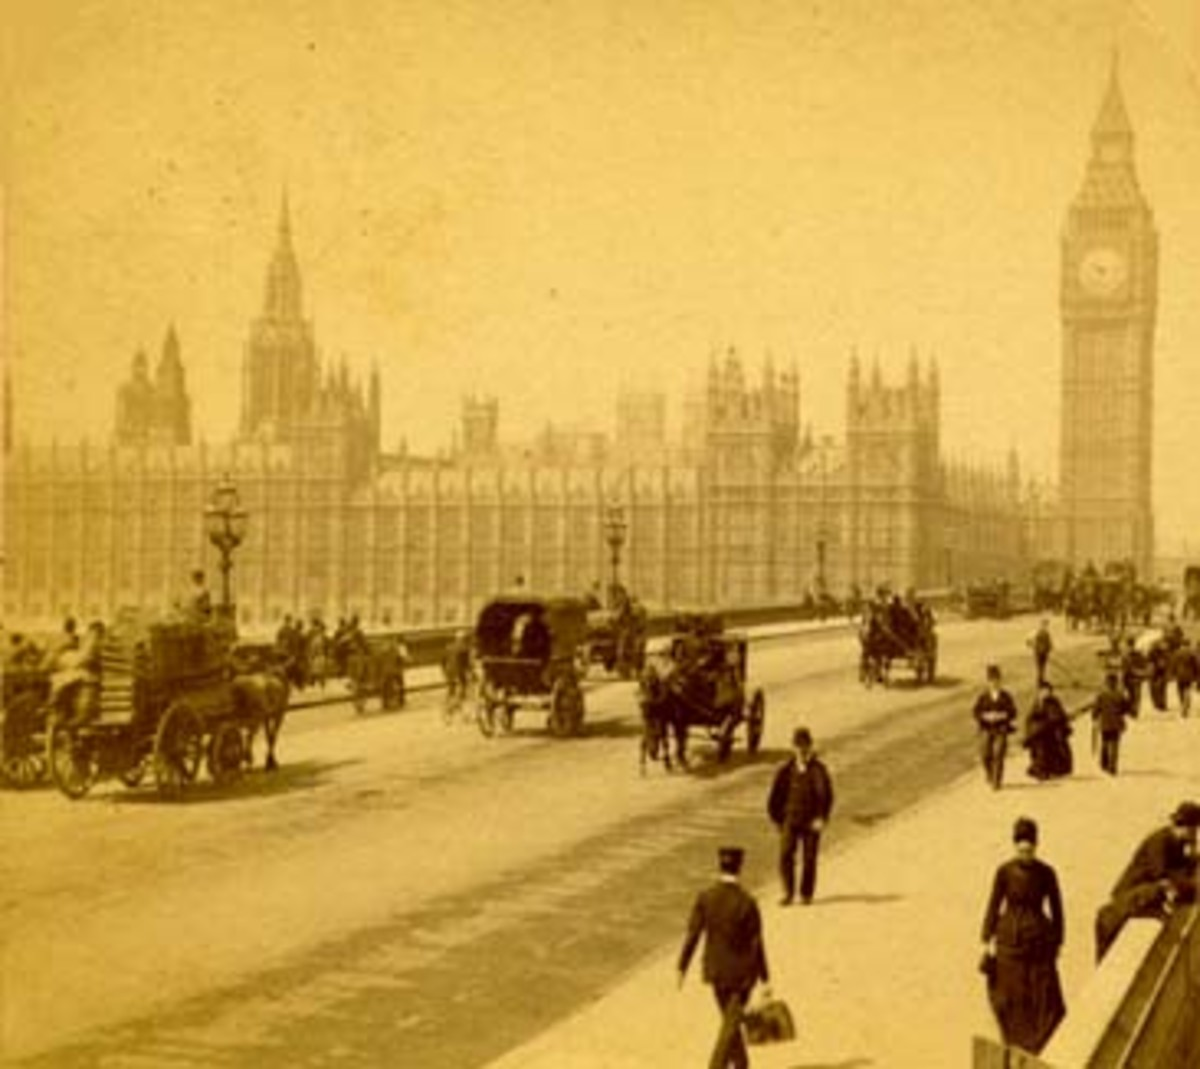 PD23. Public domain - copyright expired. see: http://en.wikipedia.org/wiki/File:Westminster.jpg